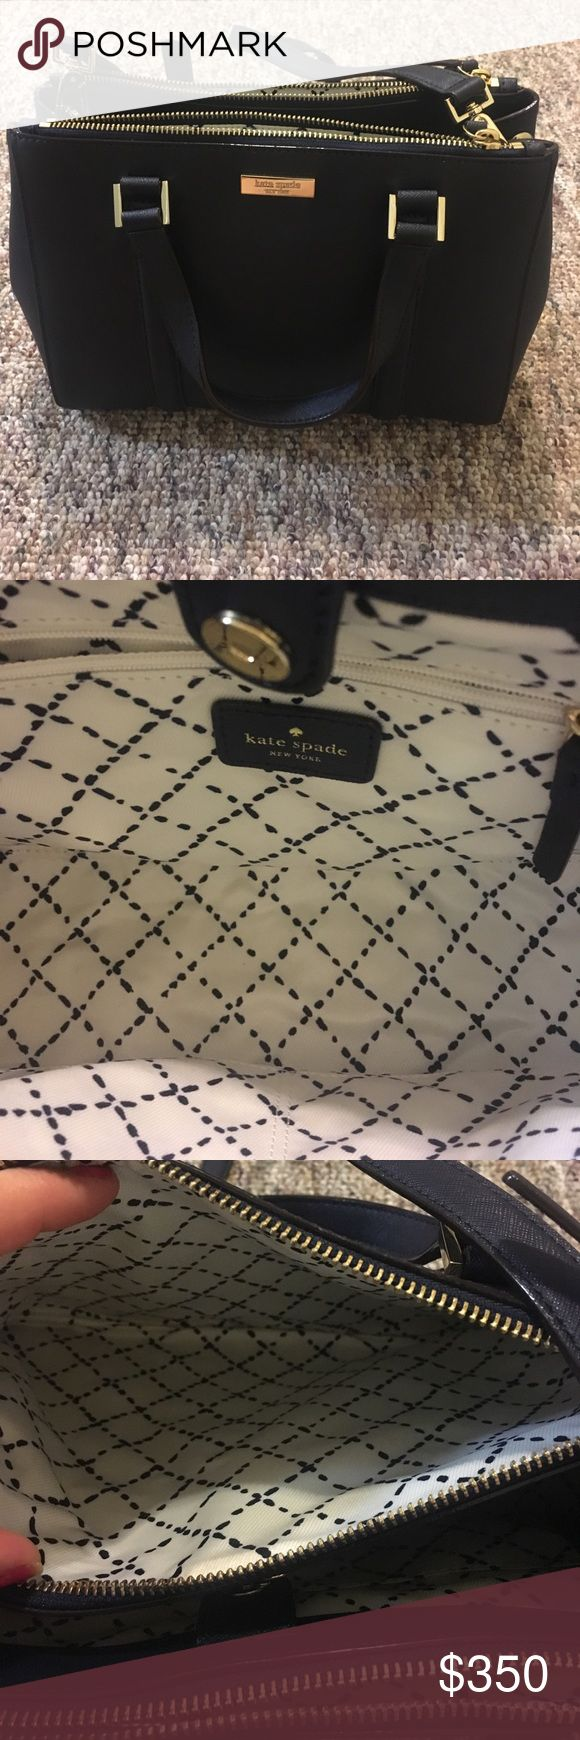 Kate Spade Newbury Lane Satchel Navy Purse Brand new, never used dark navy Kate Spade Satchel purse with three areas to store everything you need! kate spade Bags Satchels